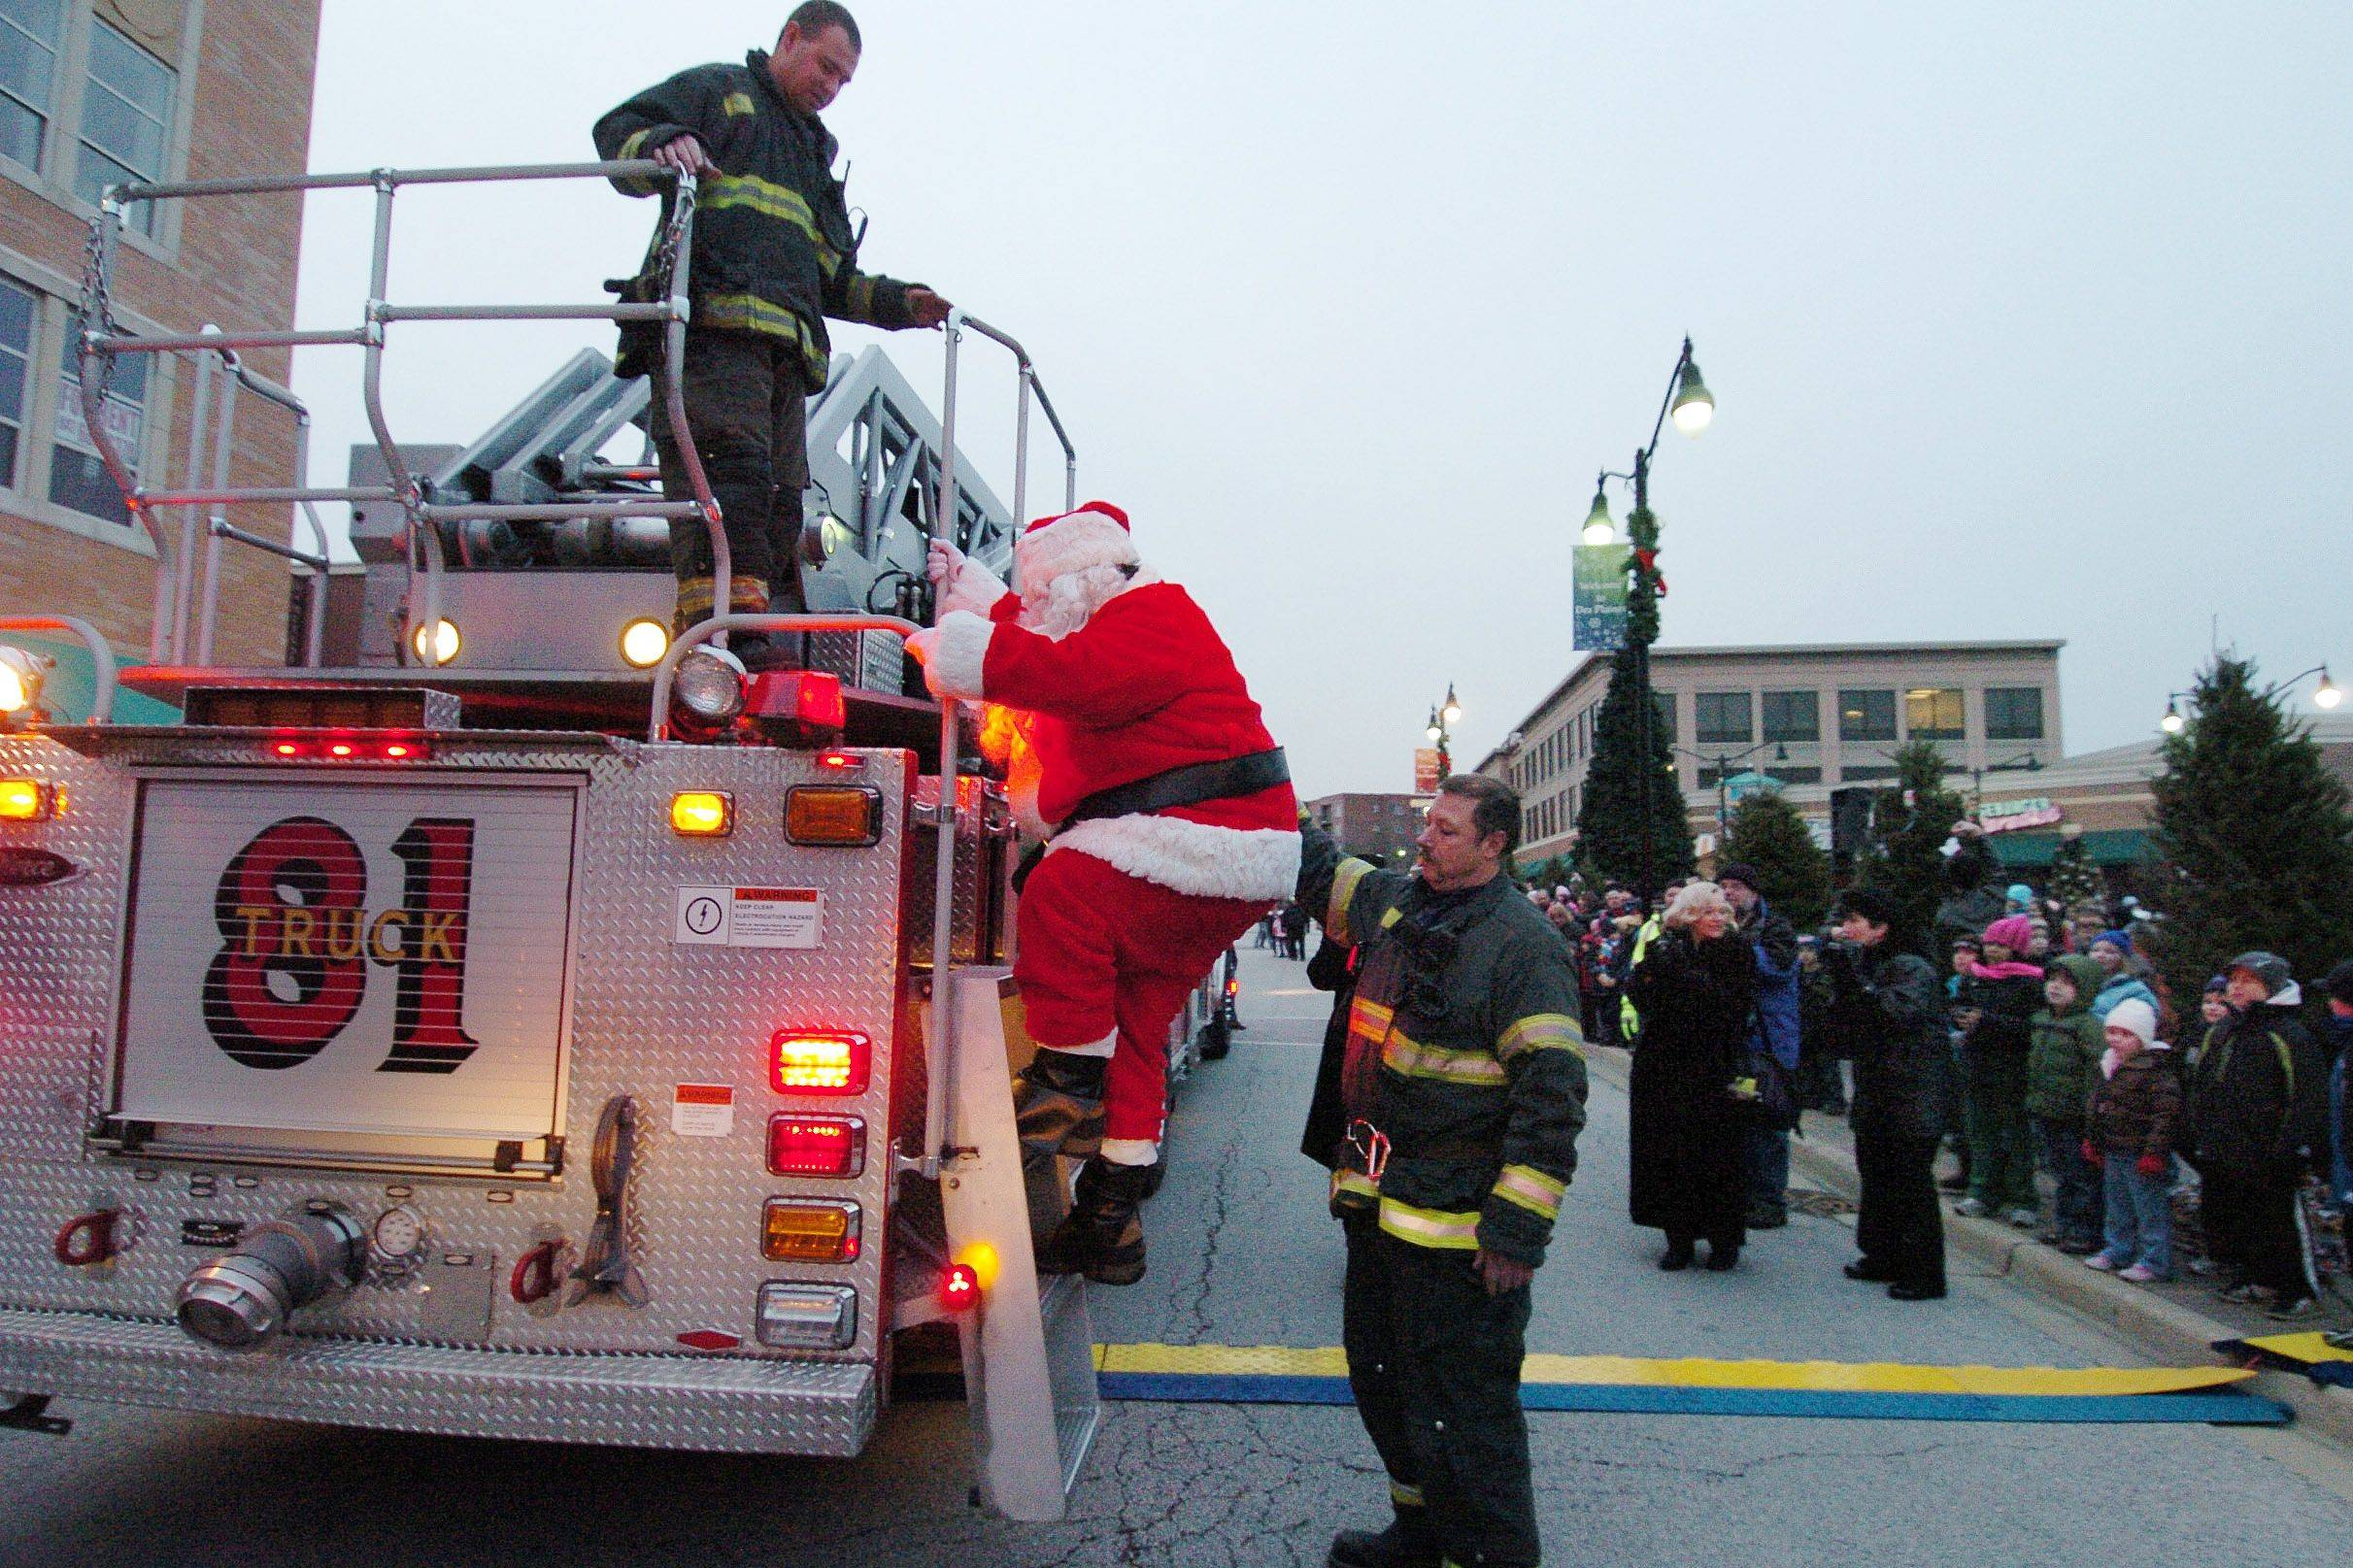 Santa is helped down from a fire truck by Des Plaines firefighters as he arrives for the Des Plaines Christmas tree lighting street fest at Metropolitan Square.